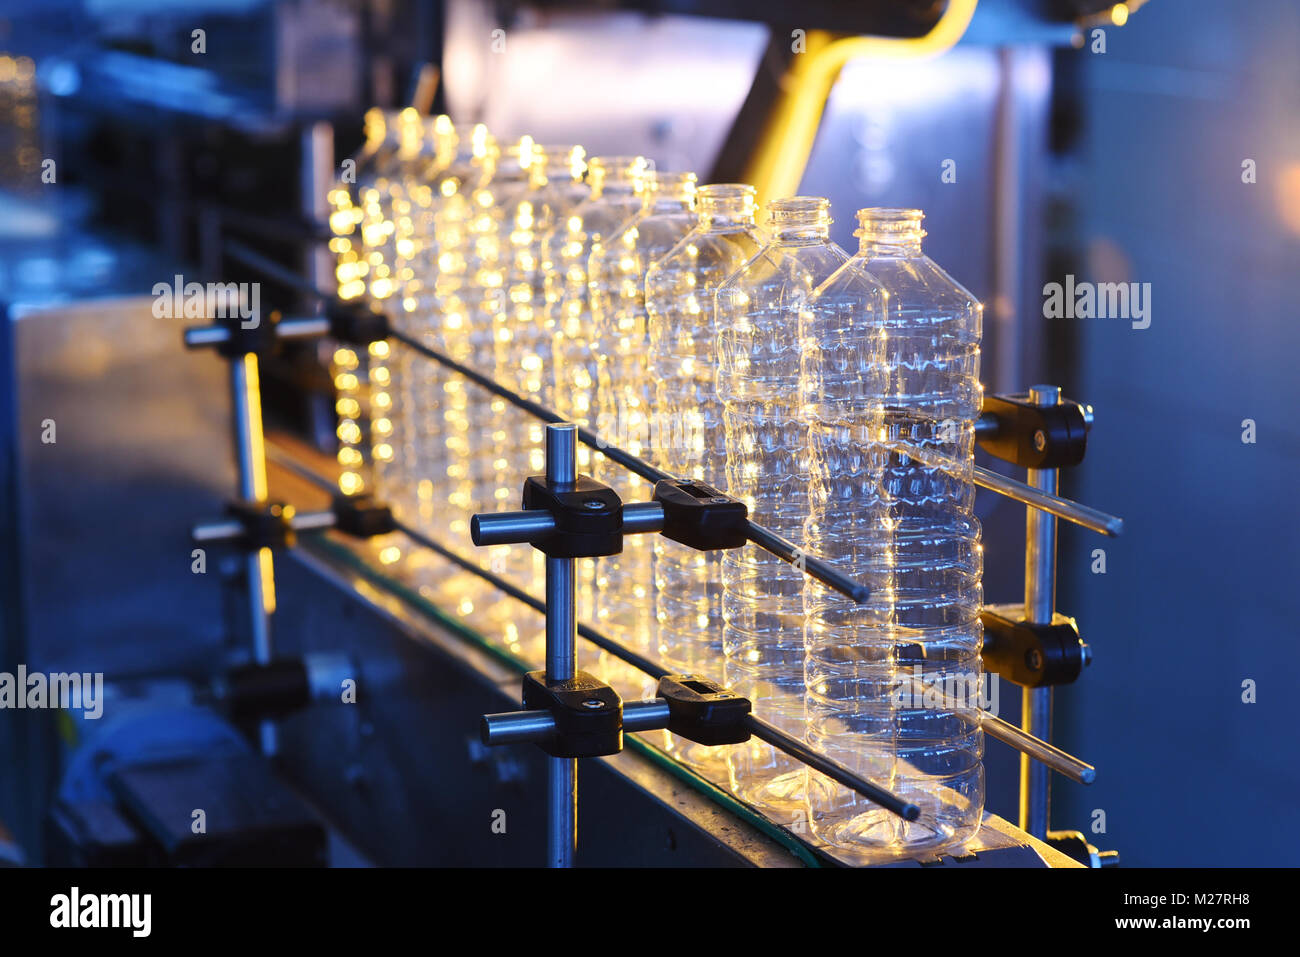 conveyor line for the production of plastic bottles - Stock Image